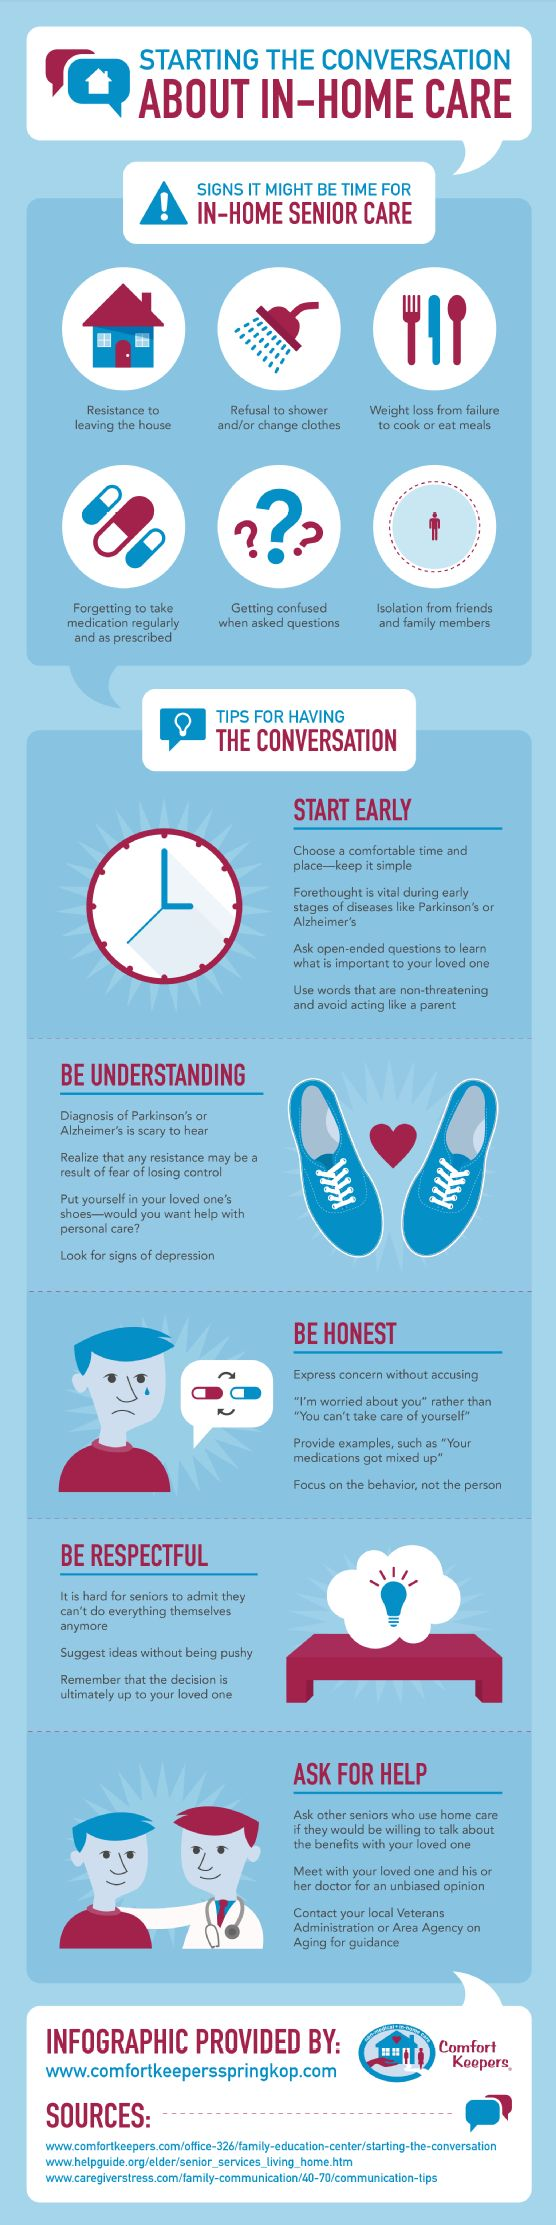 It's best to start the conversation about in-home senior care with your loved one early. This forethought is vital during the early stages of diseases like Parkinson's or Alzheimer's. For tips on having this important conversation, take a look at this infographic.